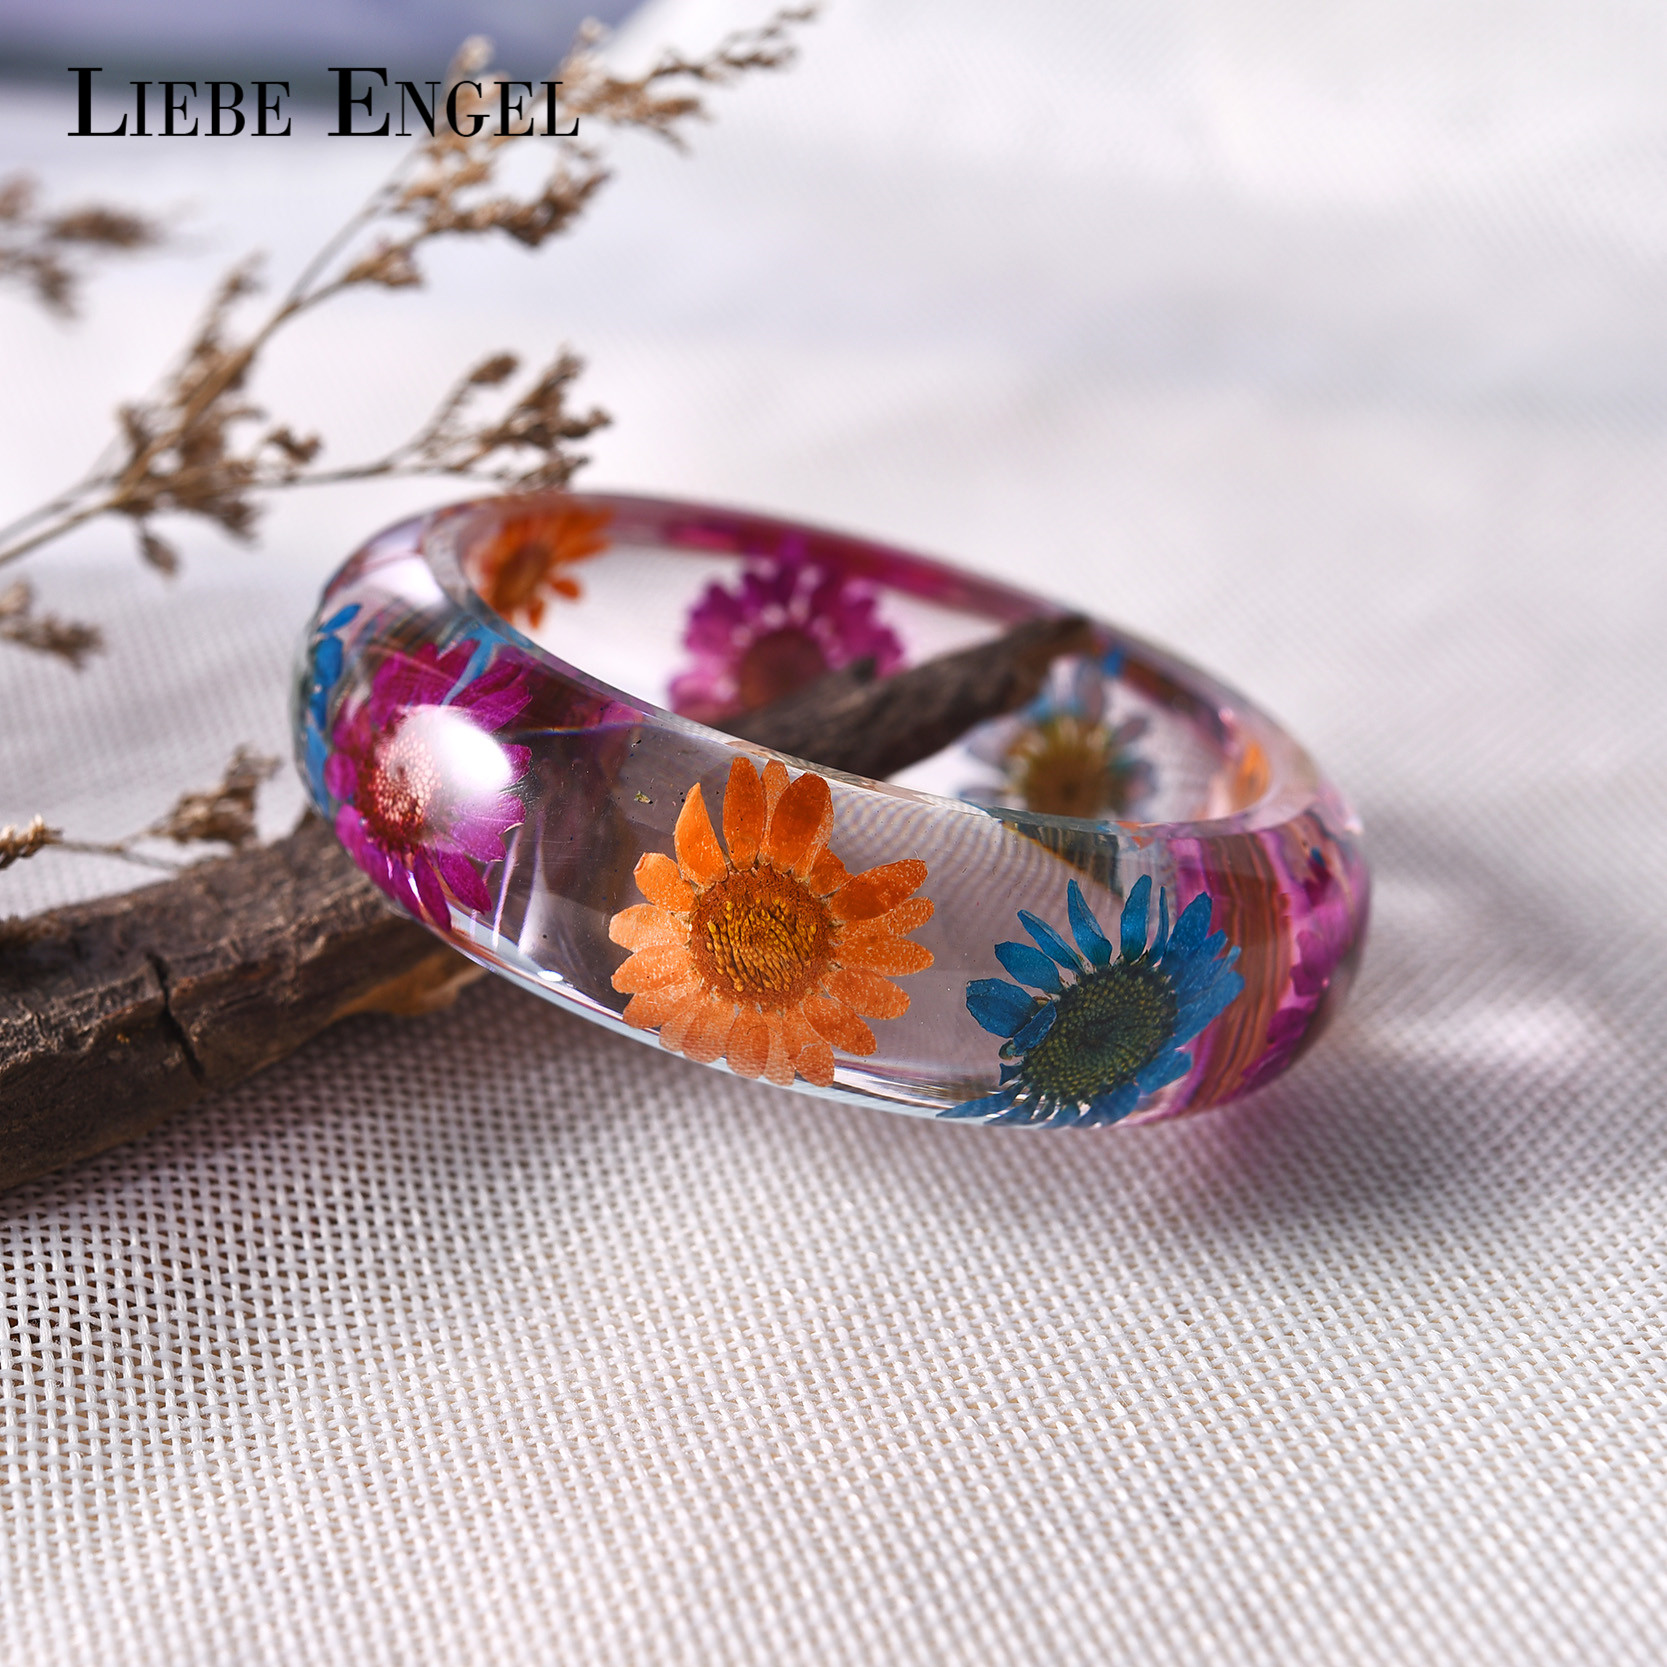 LIEBE ENGEL Real Colorful Dried Flower Resin Bangle Bracelet Cuff Bracelet For Women Indian Jewelry Handmade 2017